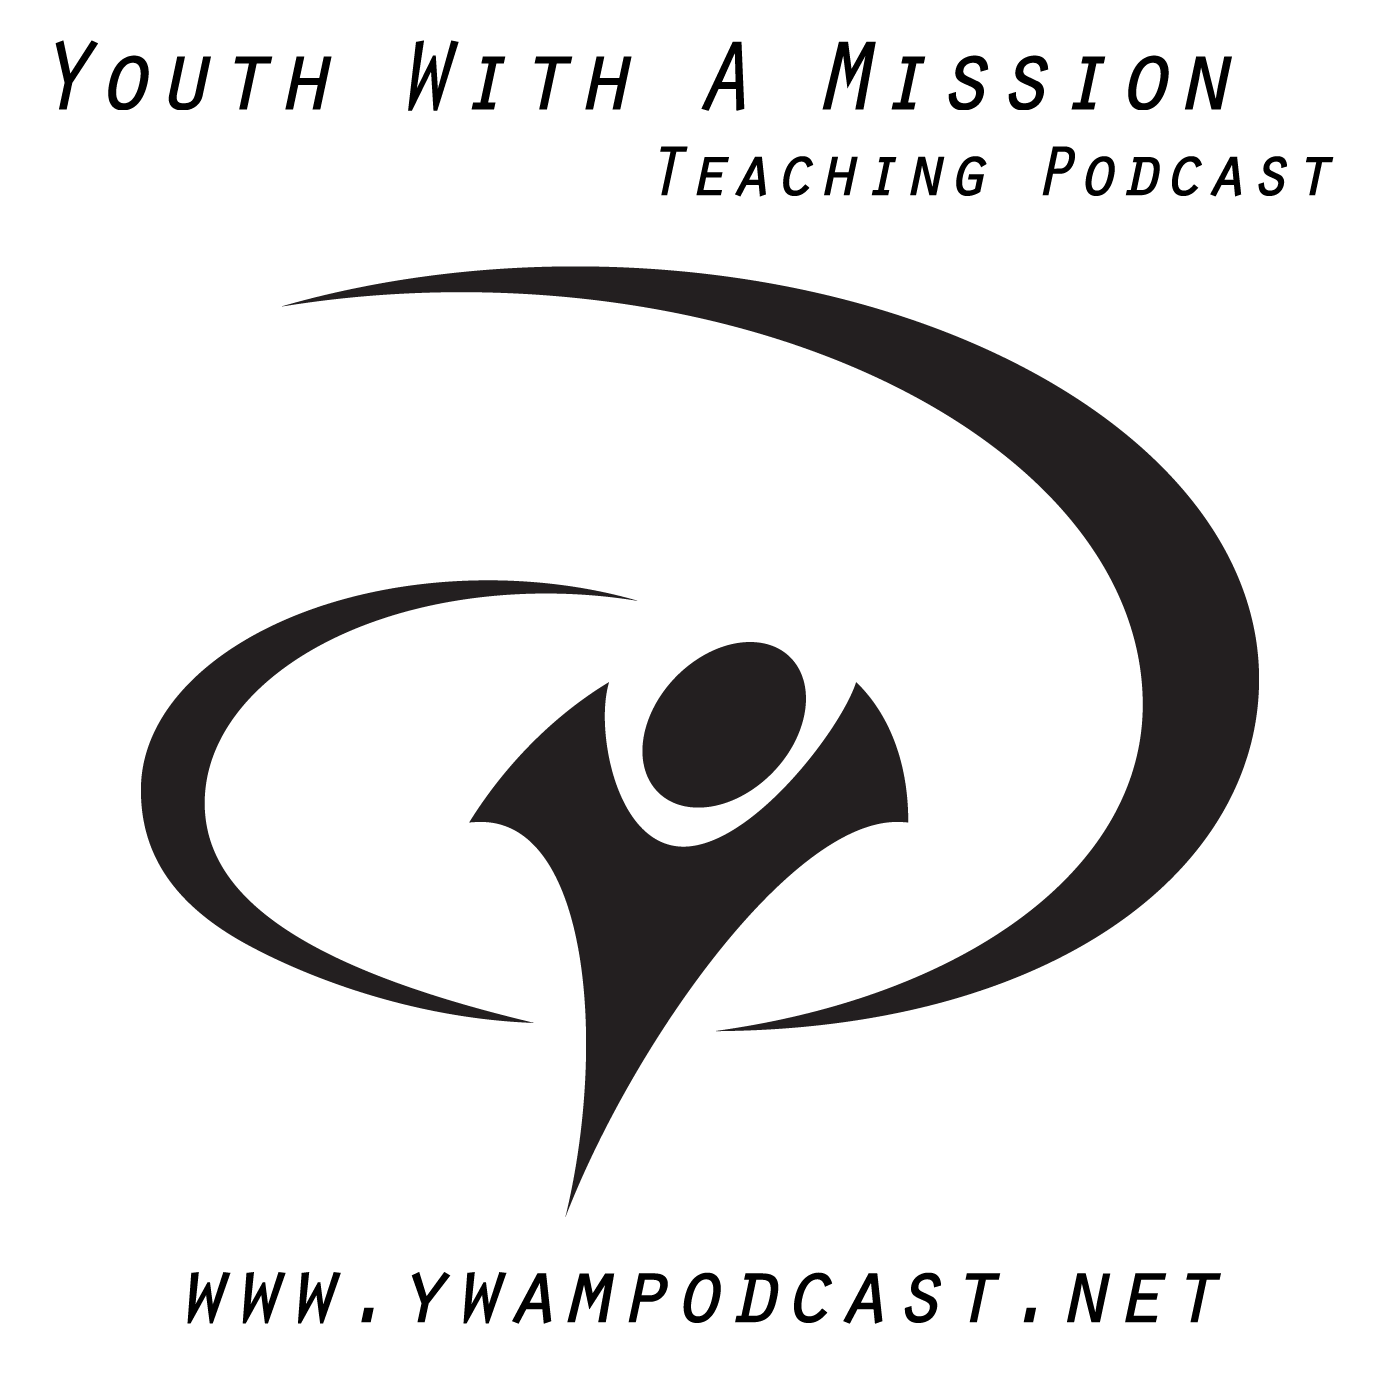 The YWAM Christian Teaching Podcast